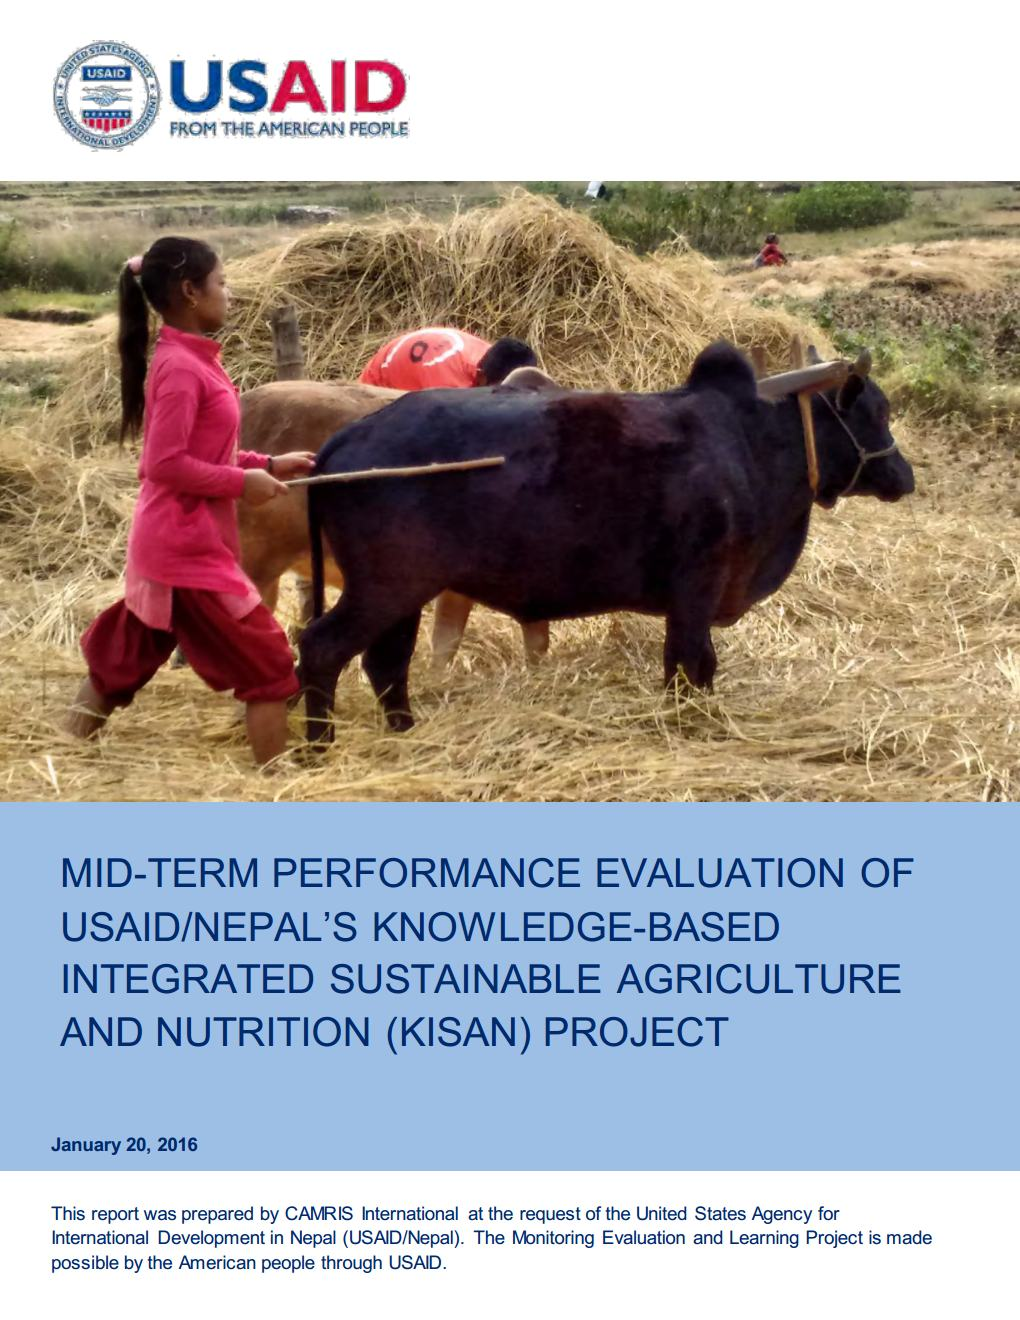 Mid-Term Performance Evaluation of Knowledge-Based Integrated Sustainable Agriculture and Nutrition (KISAN) Project